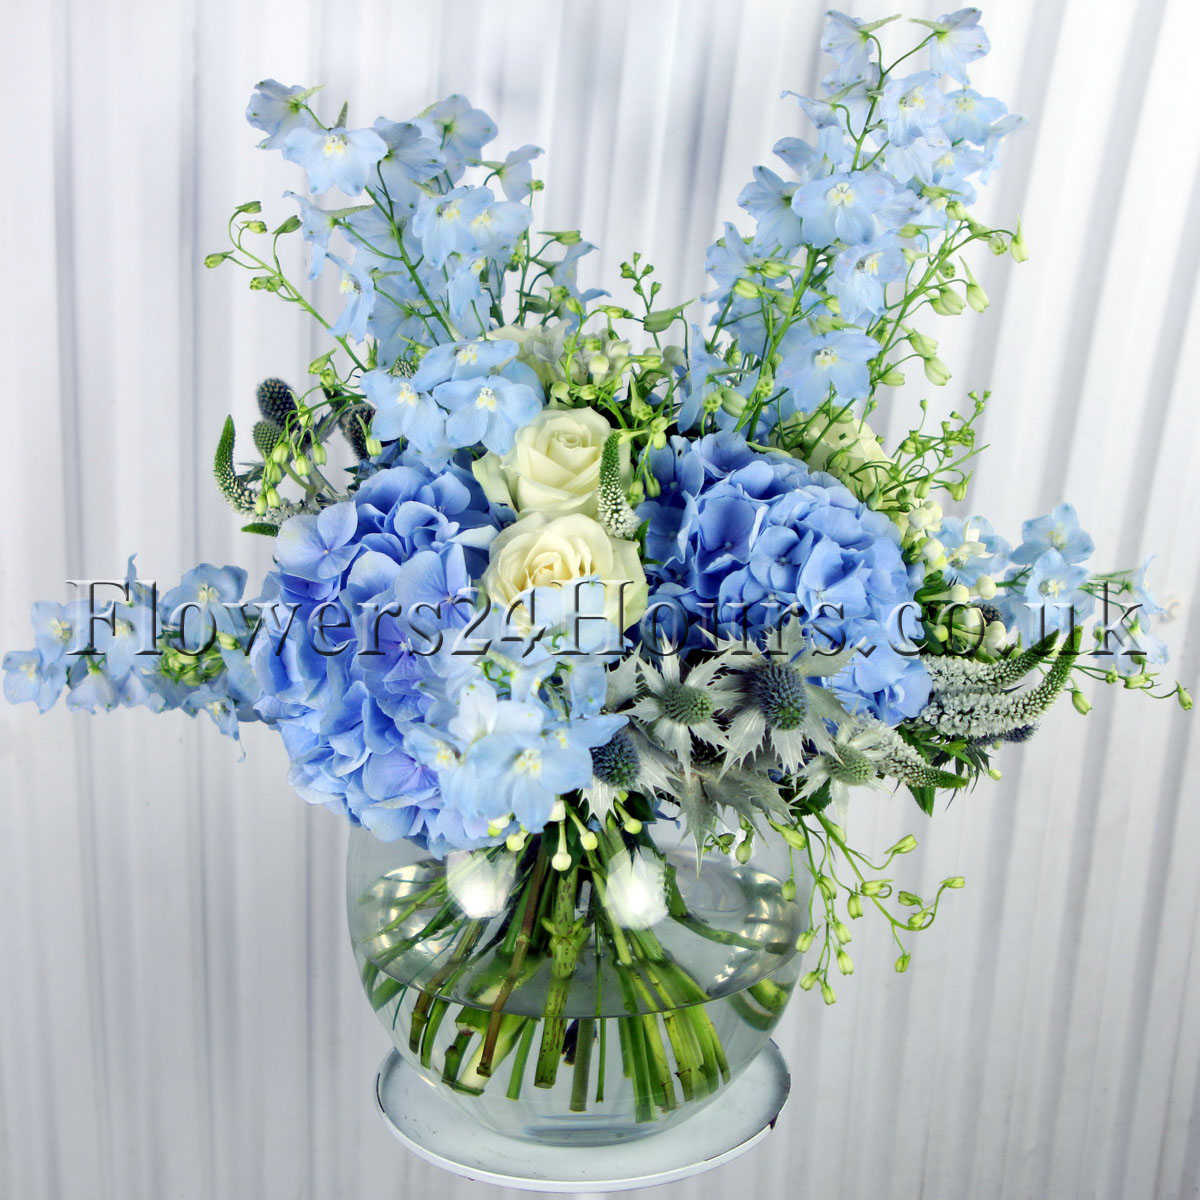 A New Bouquet for a Royal Baby Boy!